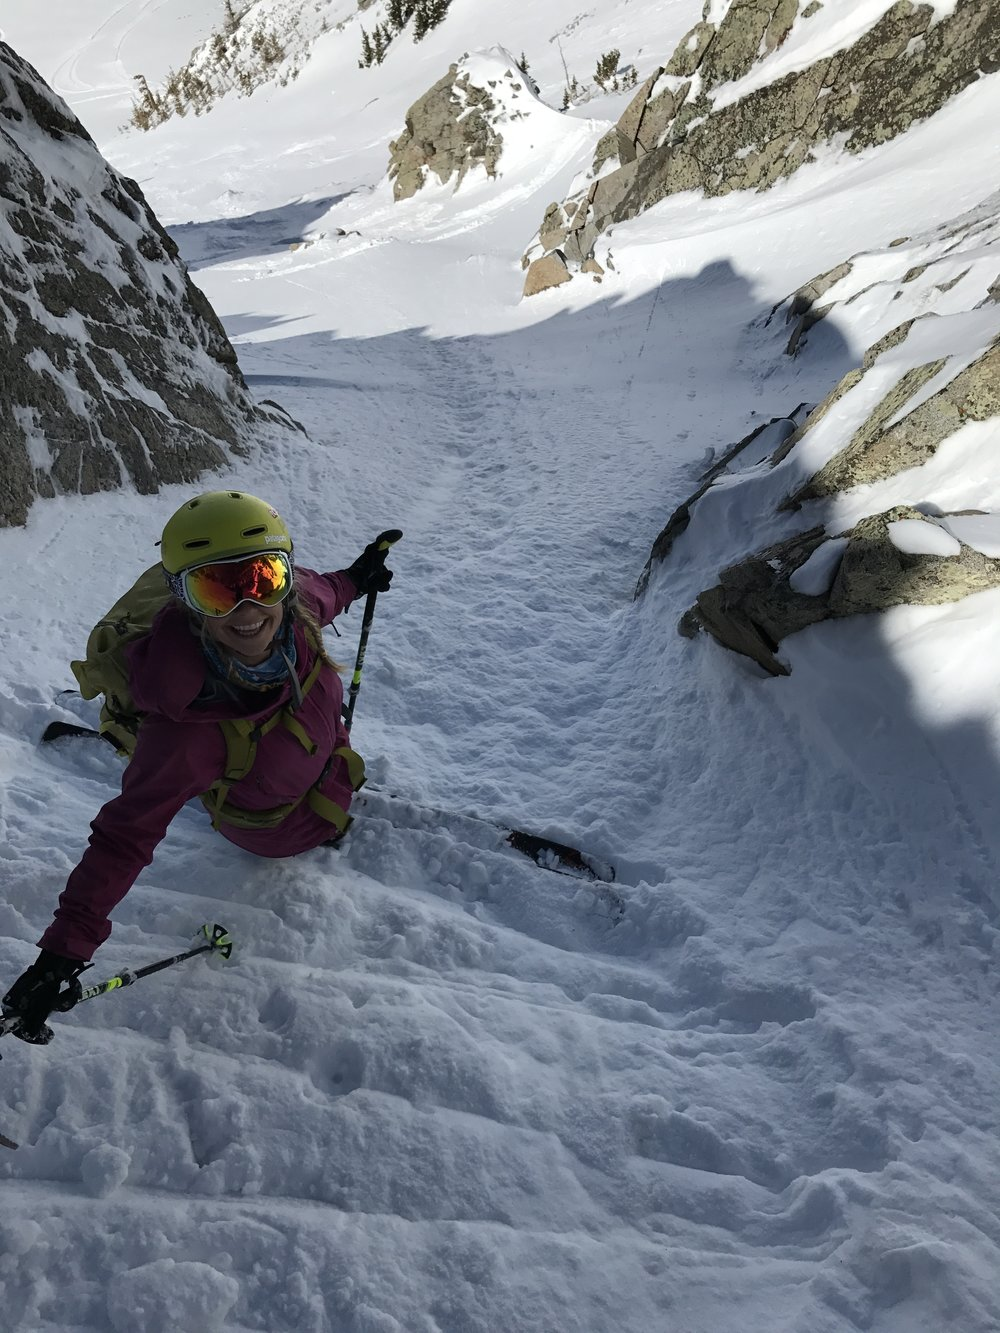 Yes, these lines are steep! Caroline Gleich photo.